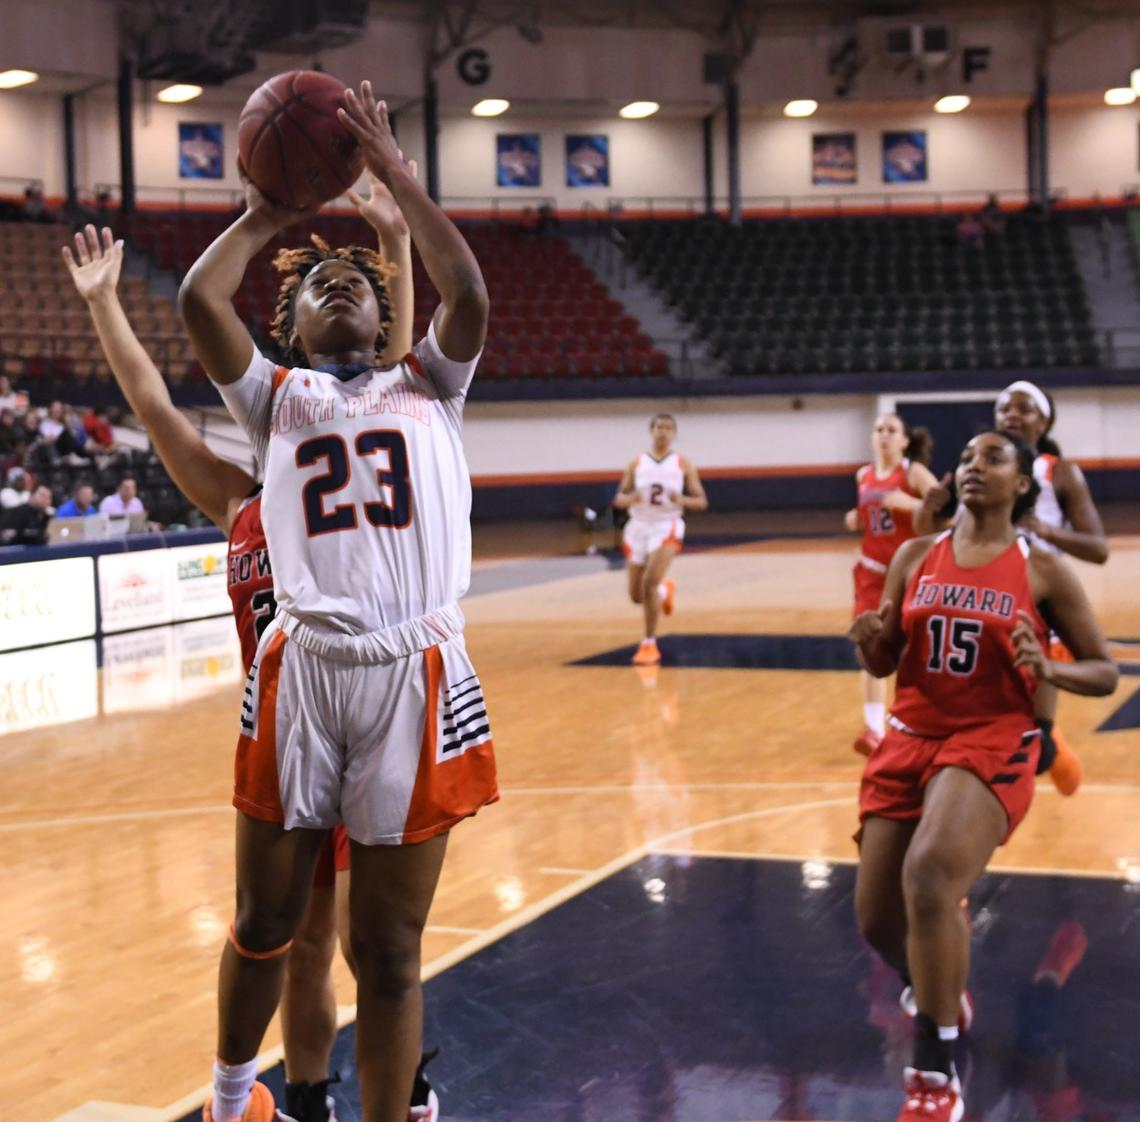 McCoy's 22 points, nine boards lead #1 Lady Texans past Frank Phillips 85-55 Thursday